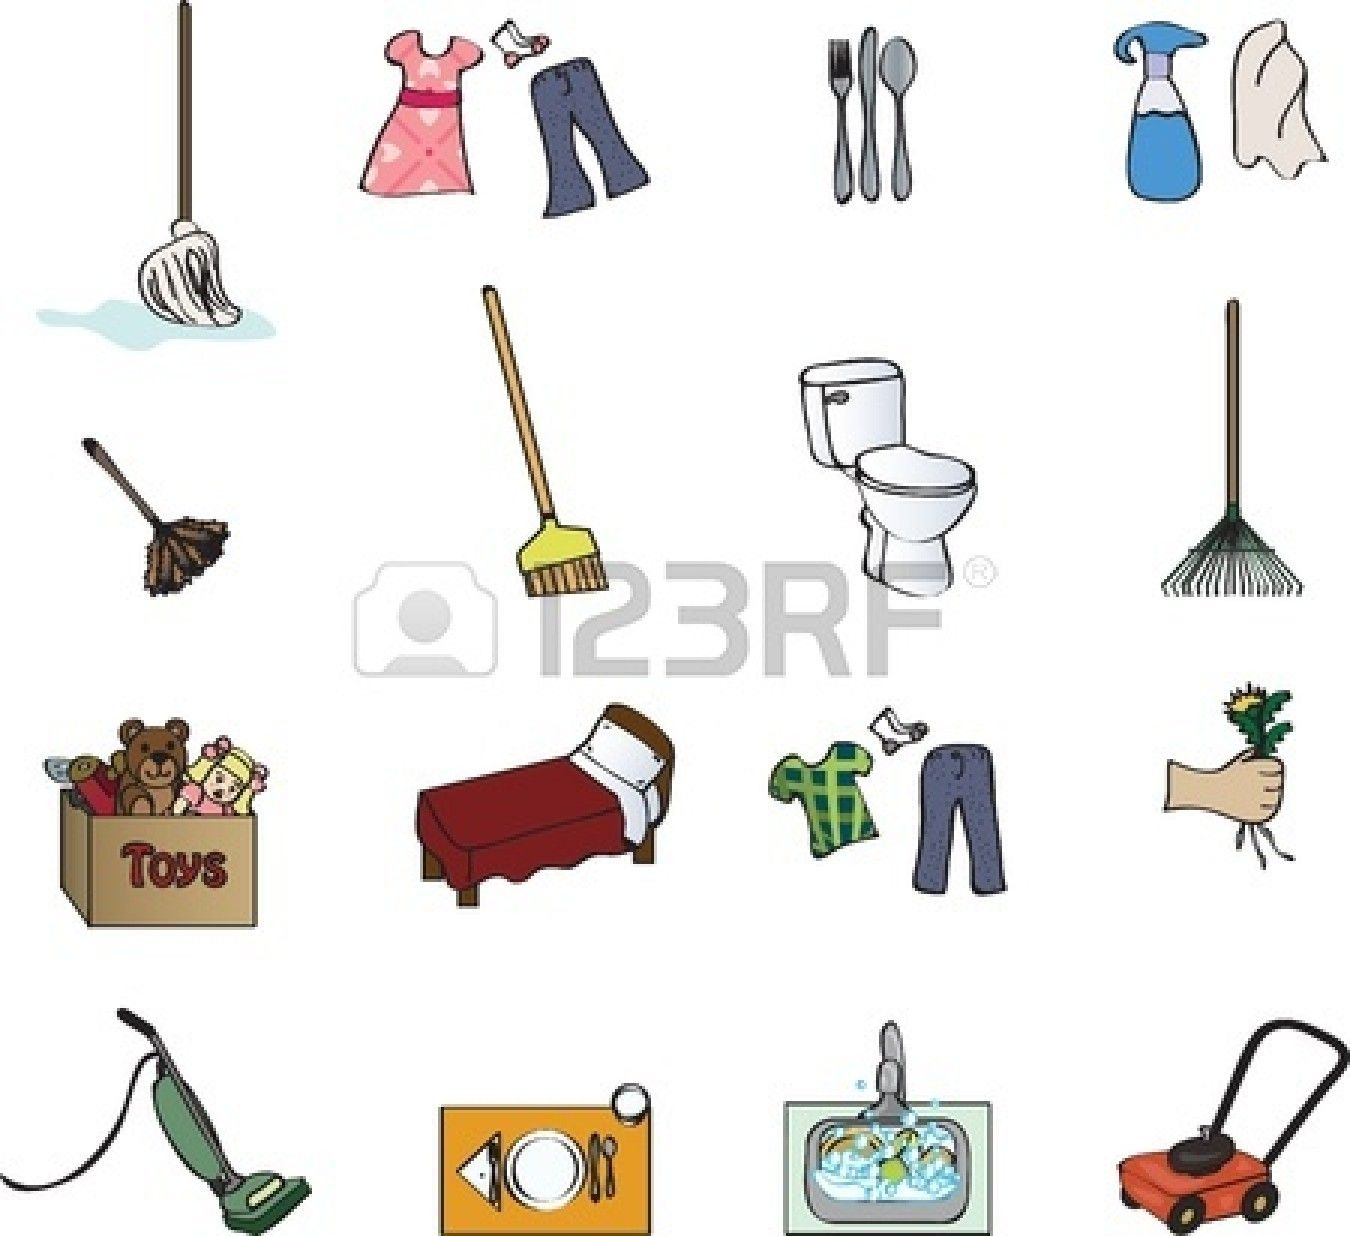 medium resolution of icons for a chore chart stock vector